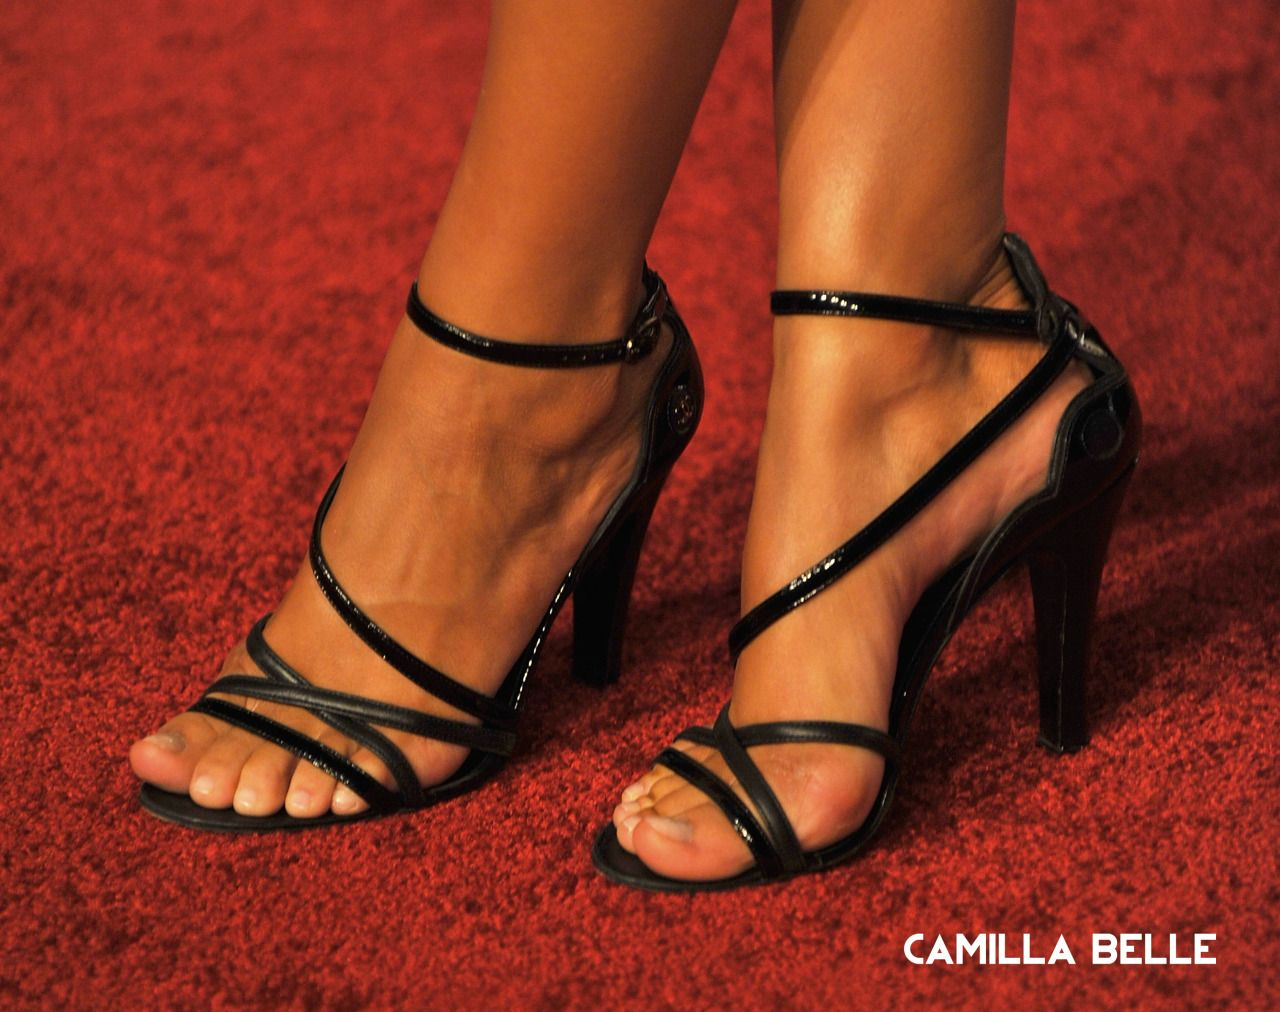 Camilla Belle Sexy Celebrity Legs: Celebrities/Models' Feet